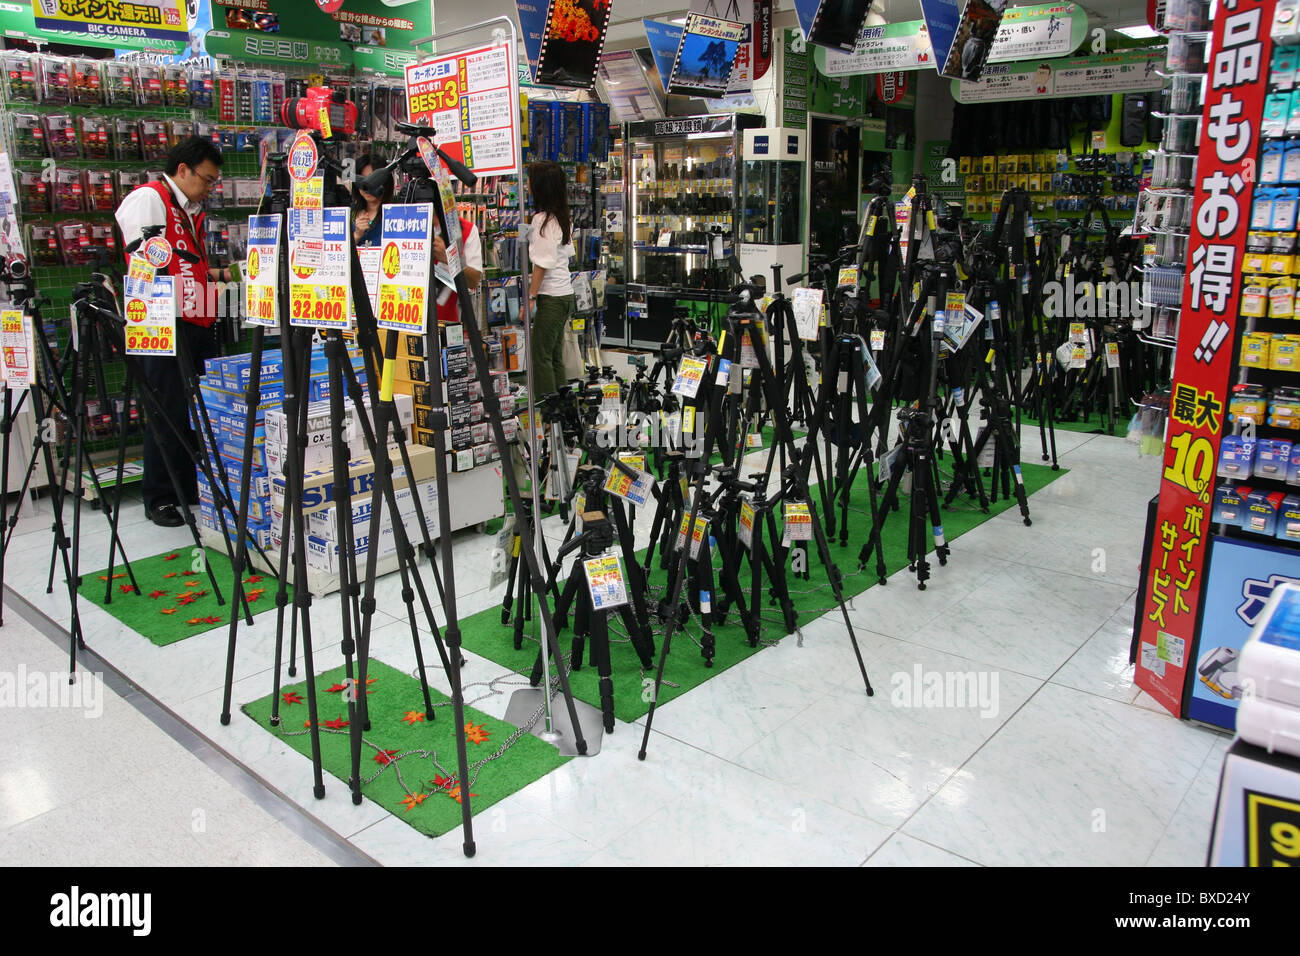 Various camera tripods for sale in Bic camera store in Tokyo Japan 2010 - Stock Image